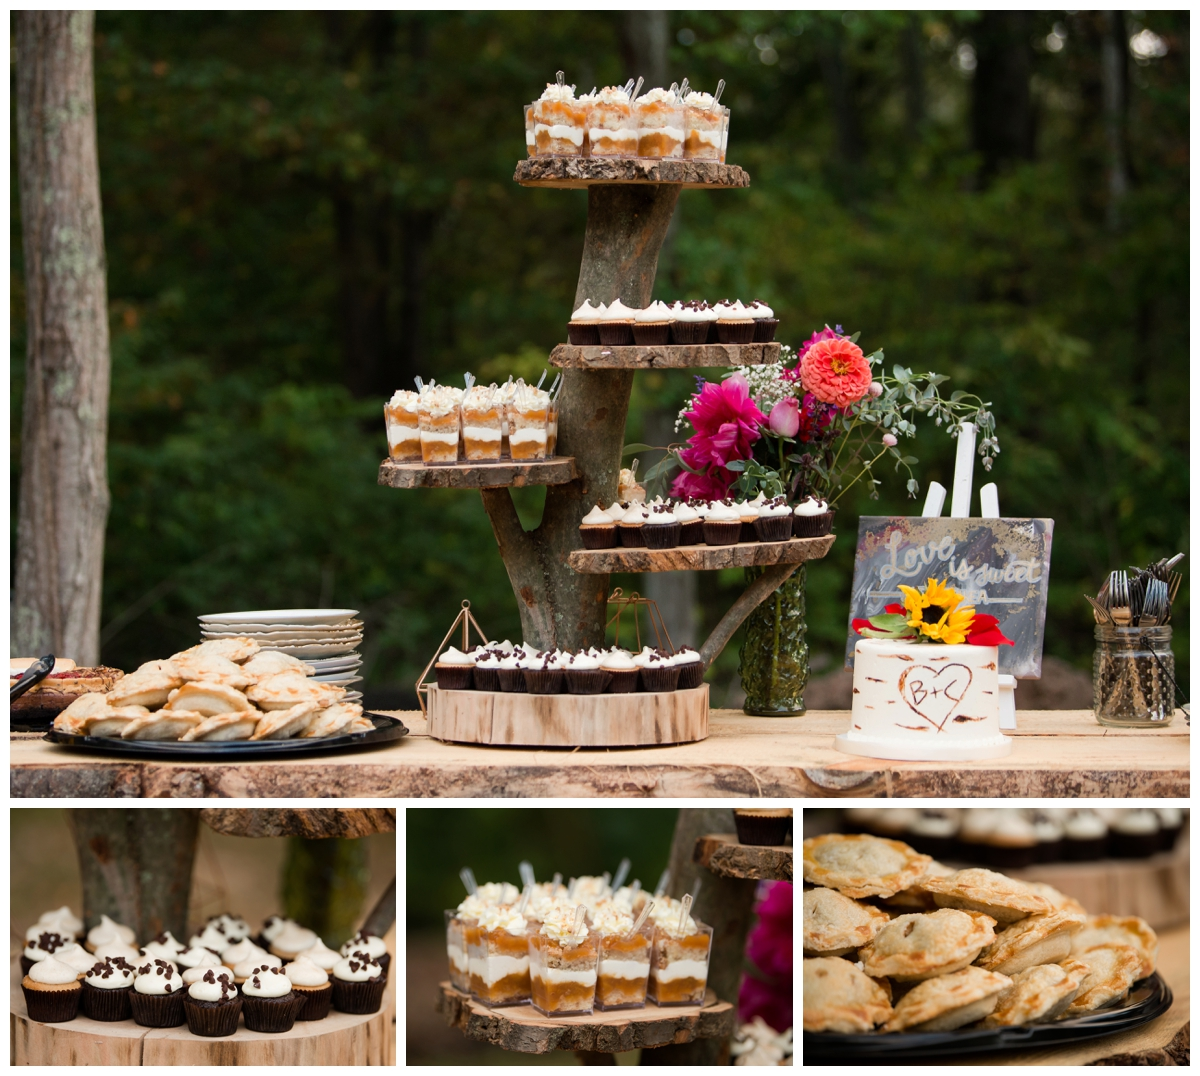 wedding cake and deserts displayed on wood slabs from a tree